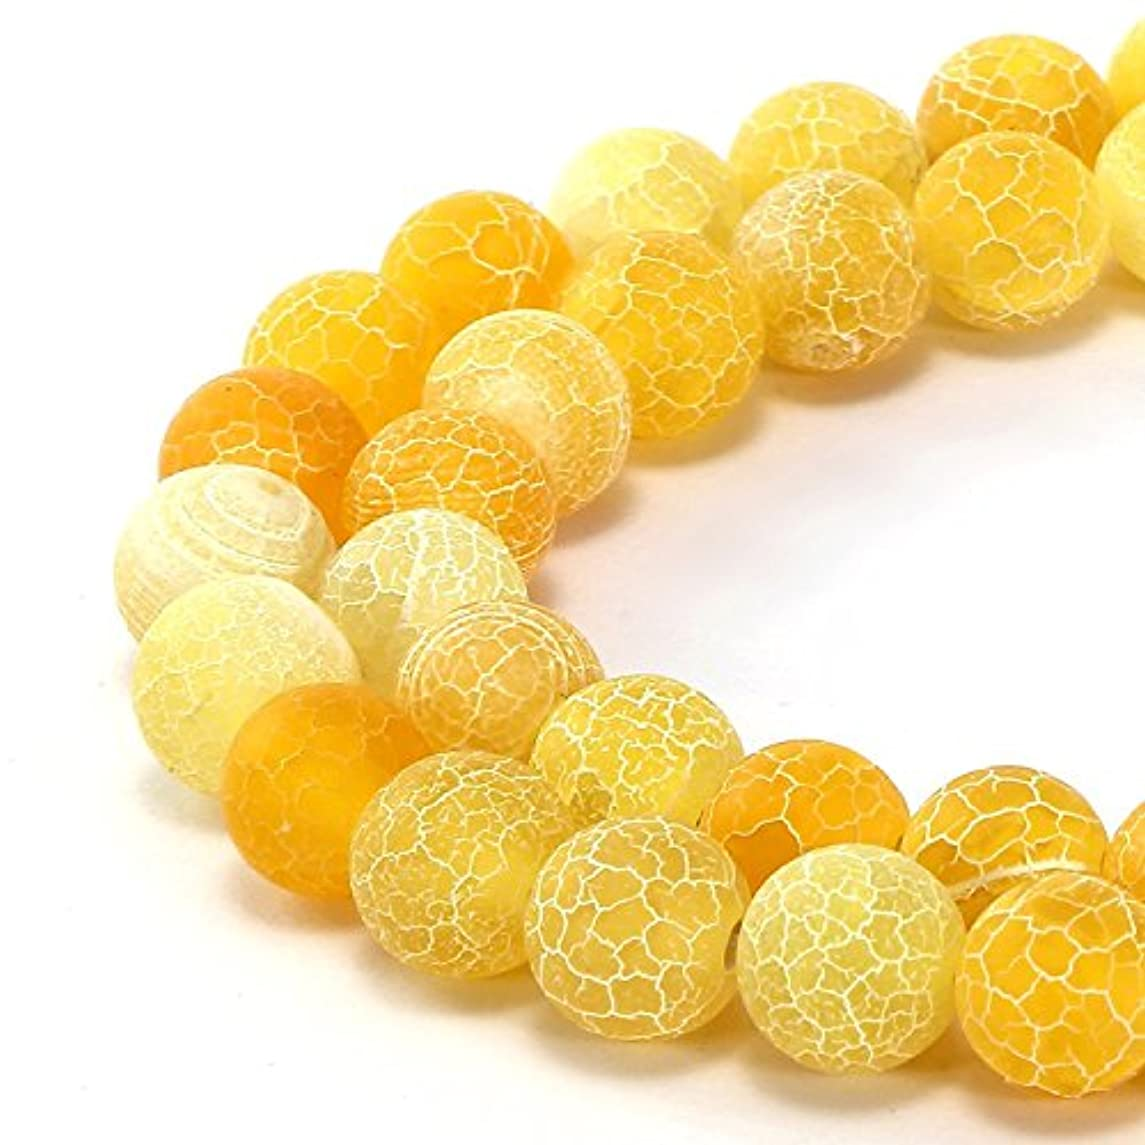 10mm Yellow Frosted Crackle Dragon Vein Agate Beads Round Semi Precious Gemstone Loose Beads for Jewelry Making (38-40pcs/strand)